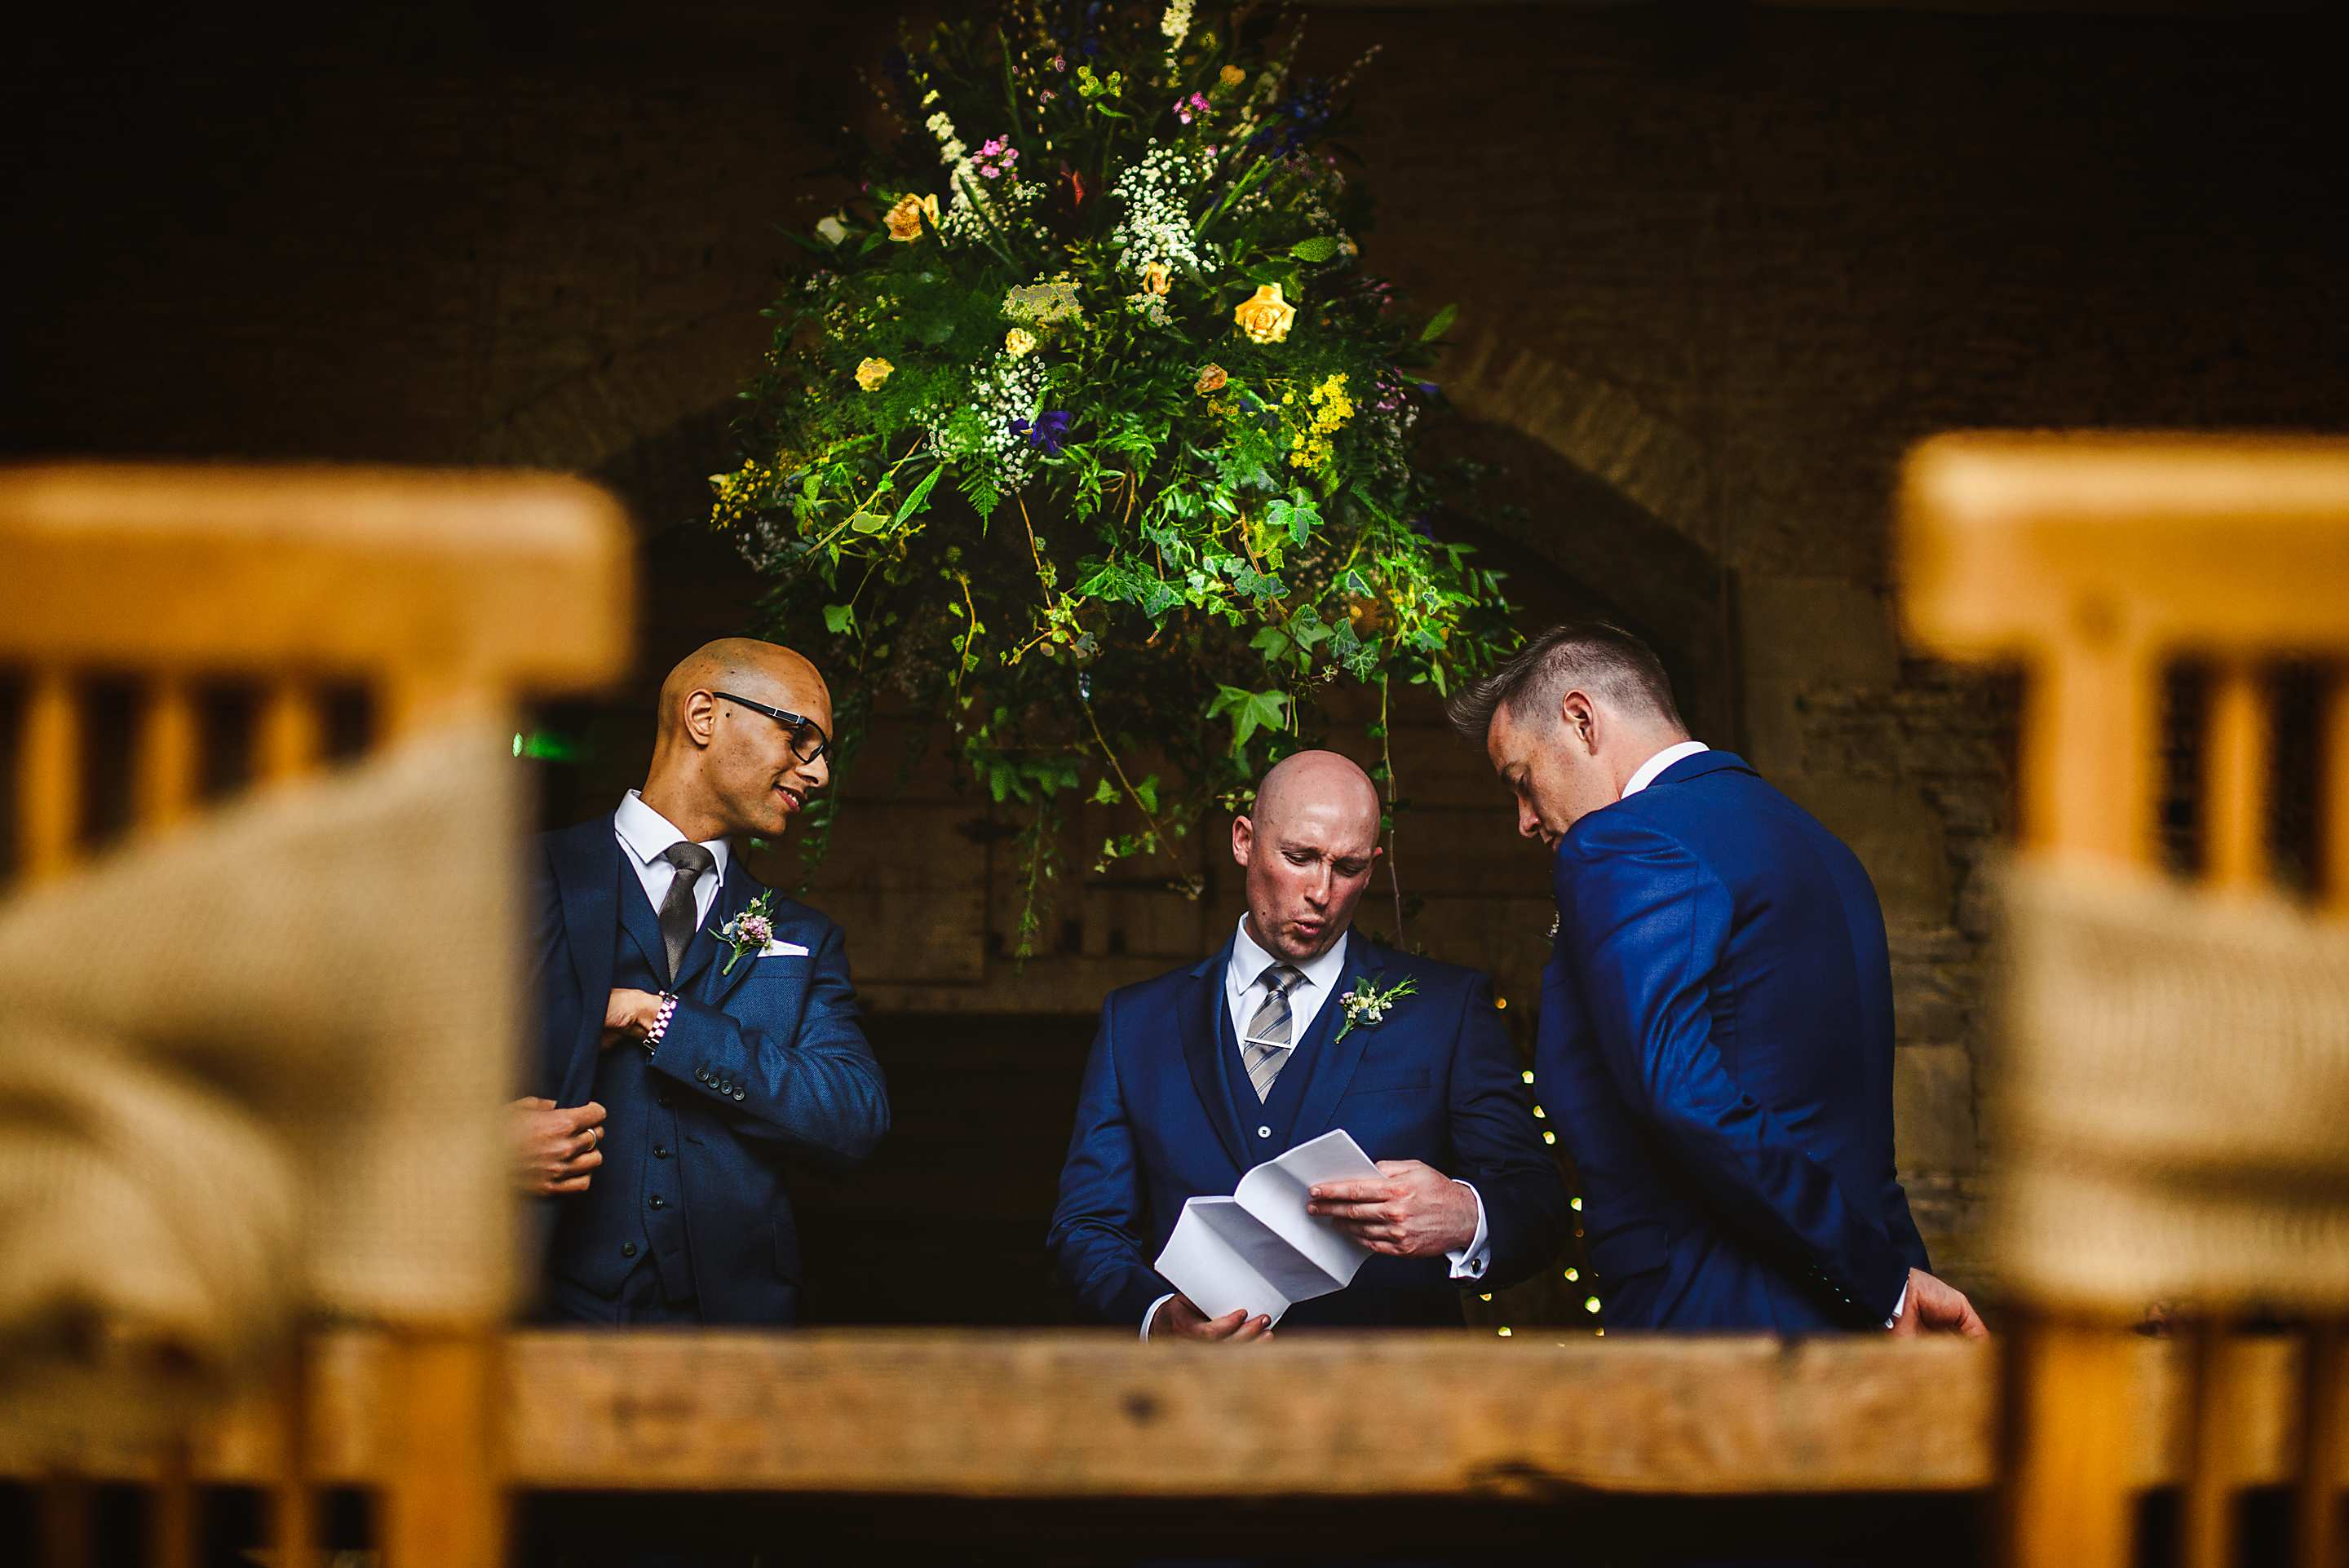 cotswolds wedding photographer 013